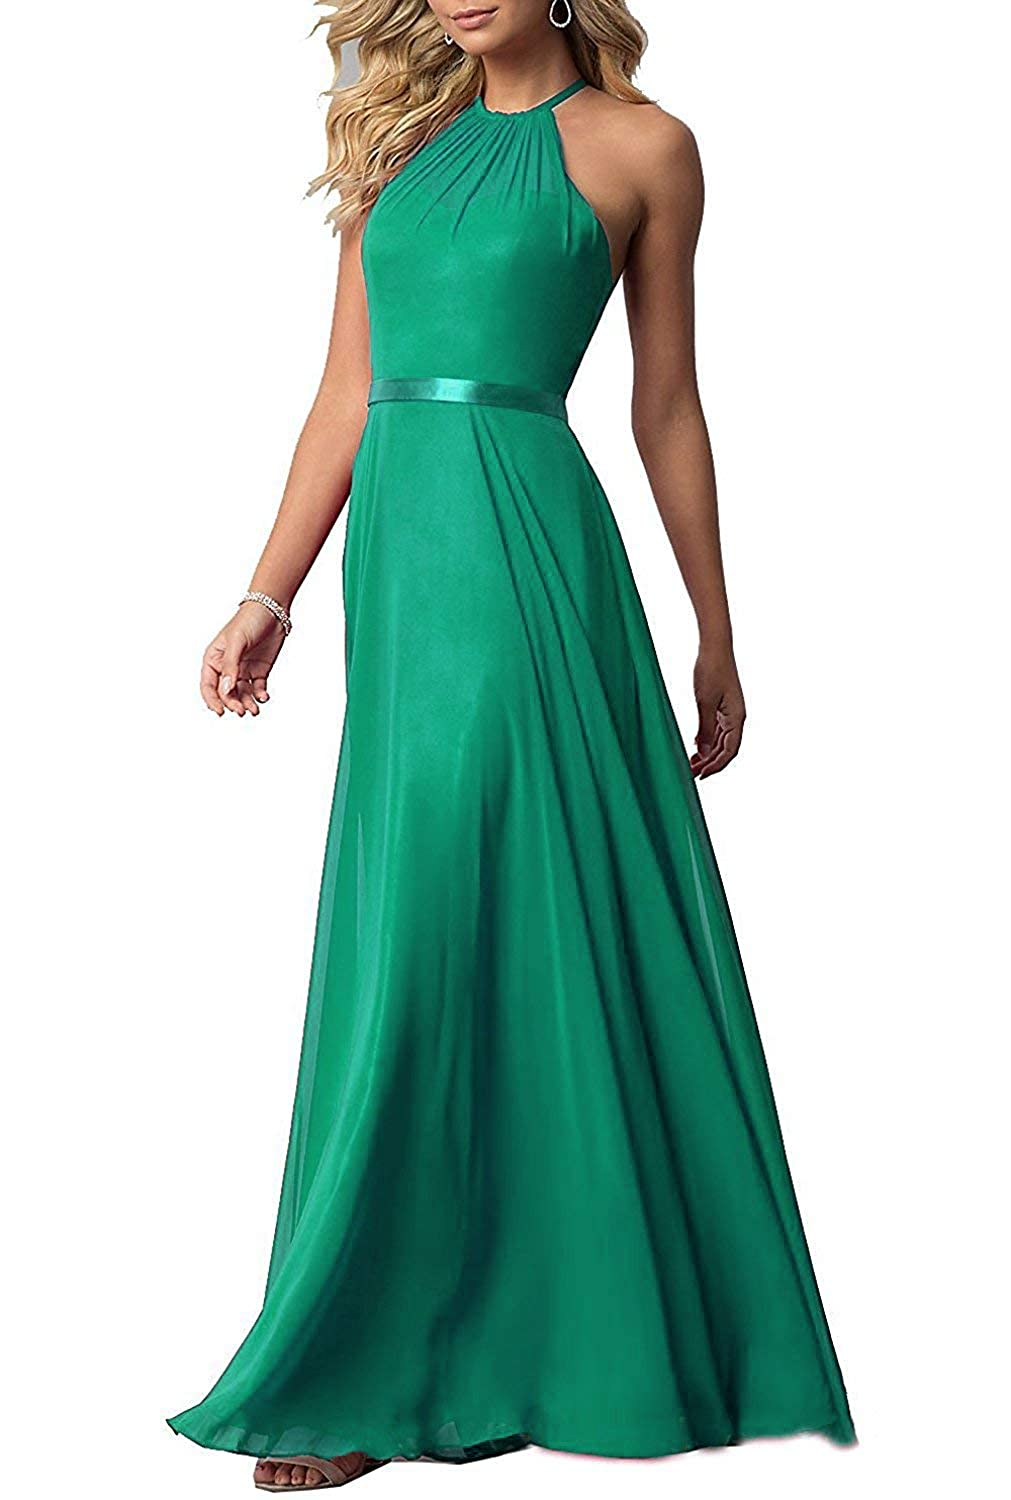 Green ROMOO Sexy Halter Long Bridesmaid Dresses Open Back Aline Formal Evening Party Gowns